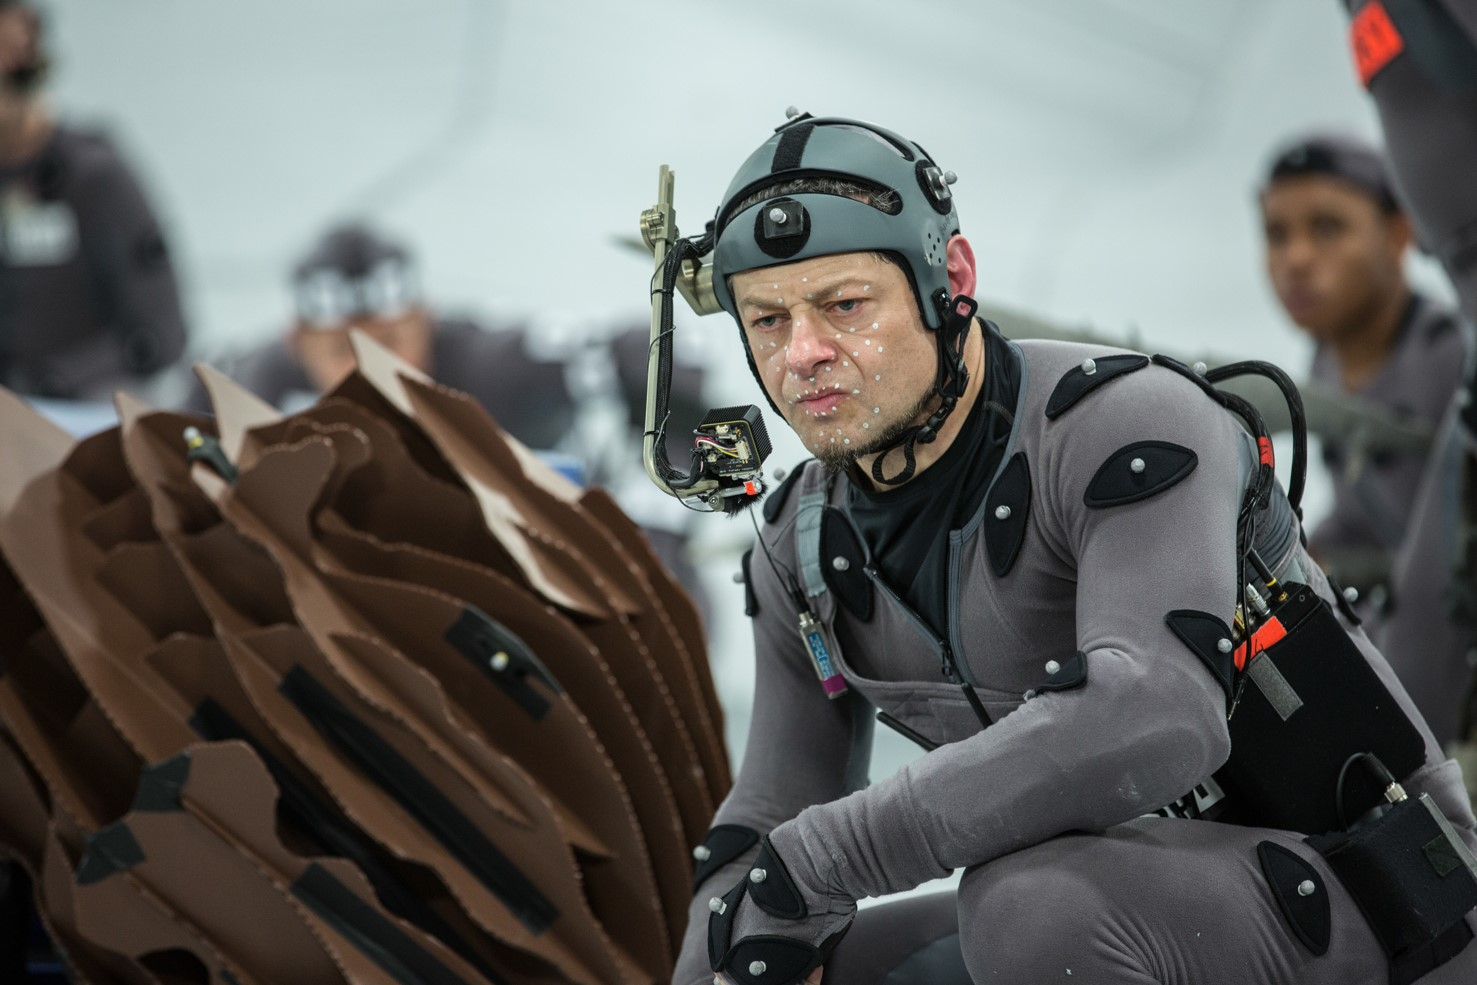 LA PLANÈTE DES SINGES L'AFFRONTEMENT - Andy Serkis - Go with the Blog